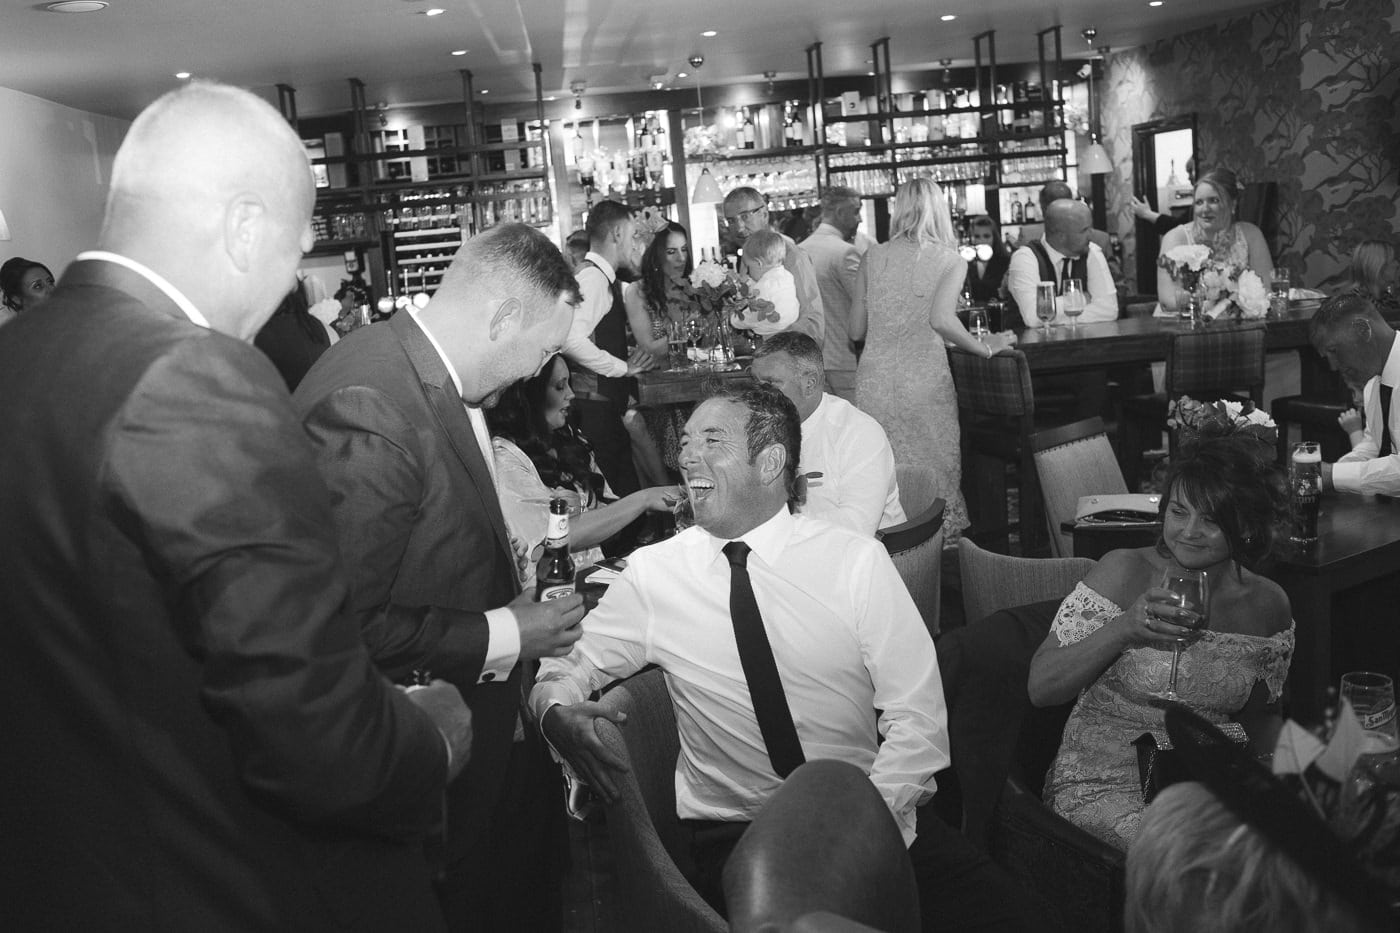 Guests having fun at the Bar Photograph Session